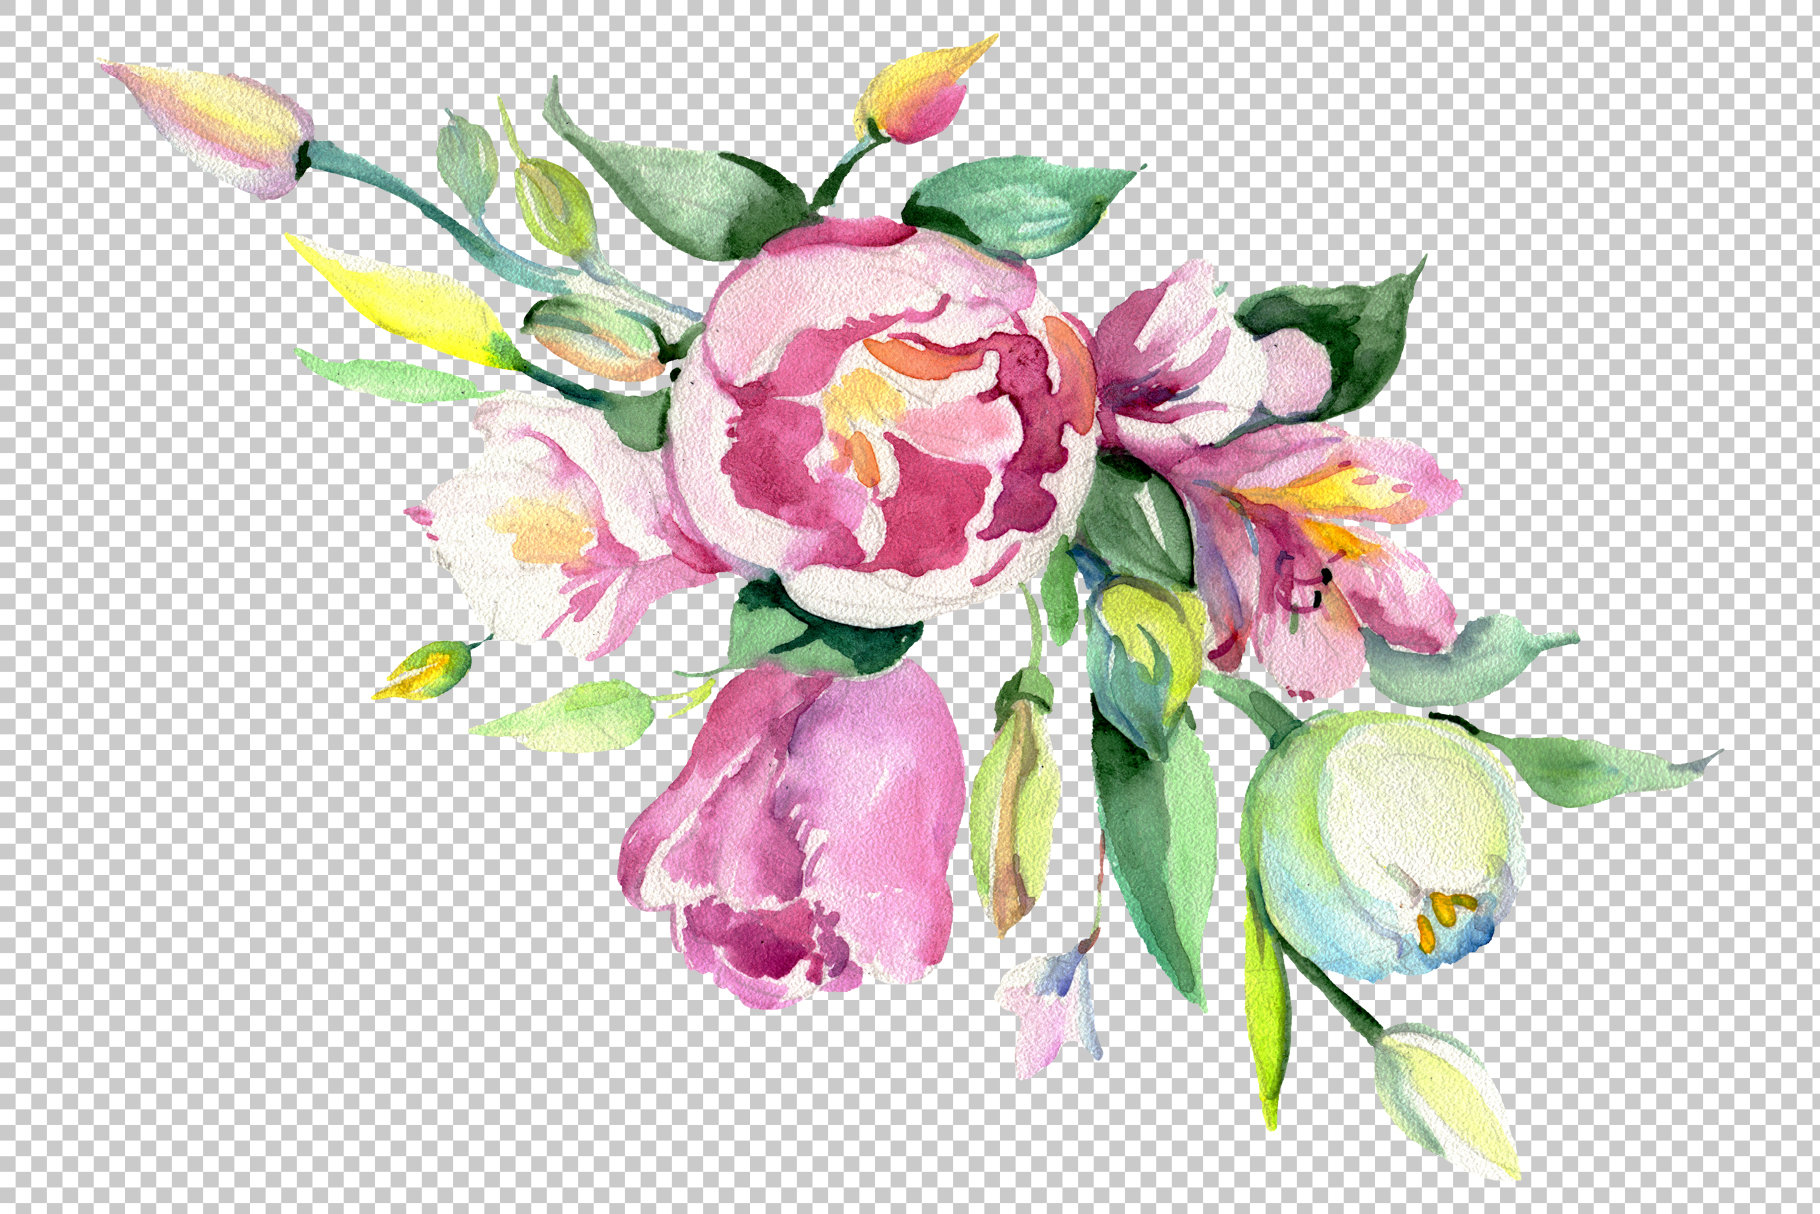 Bouquet of flowers matures feelings watercolor png example image 3